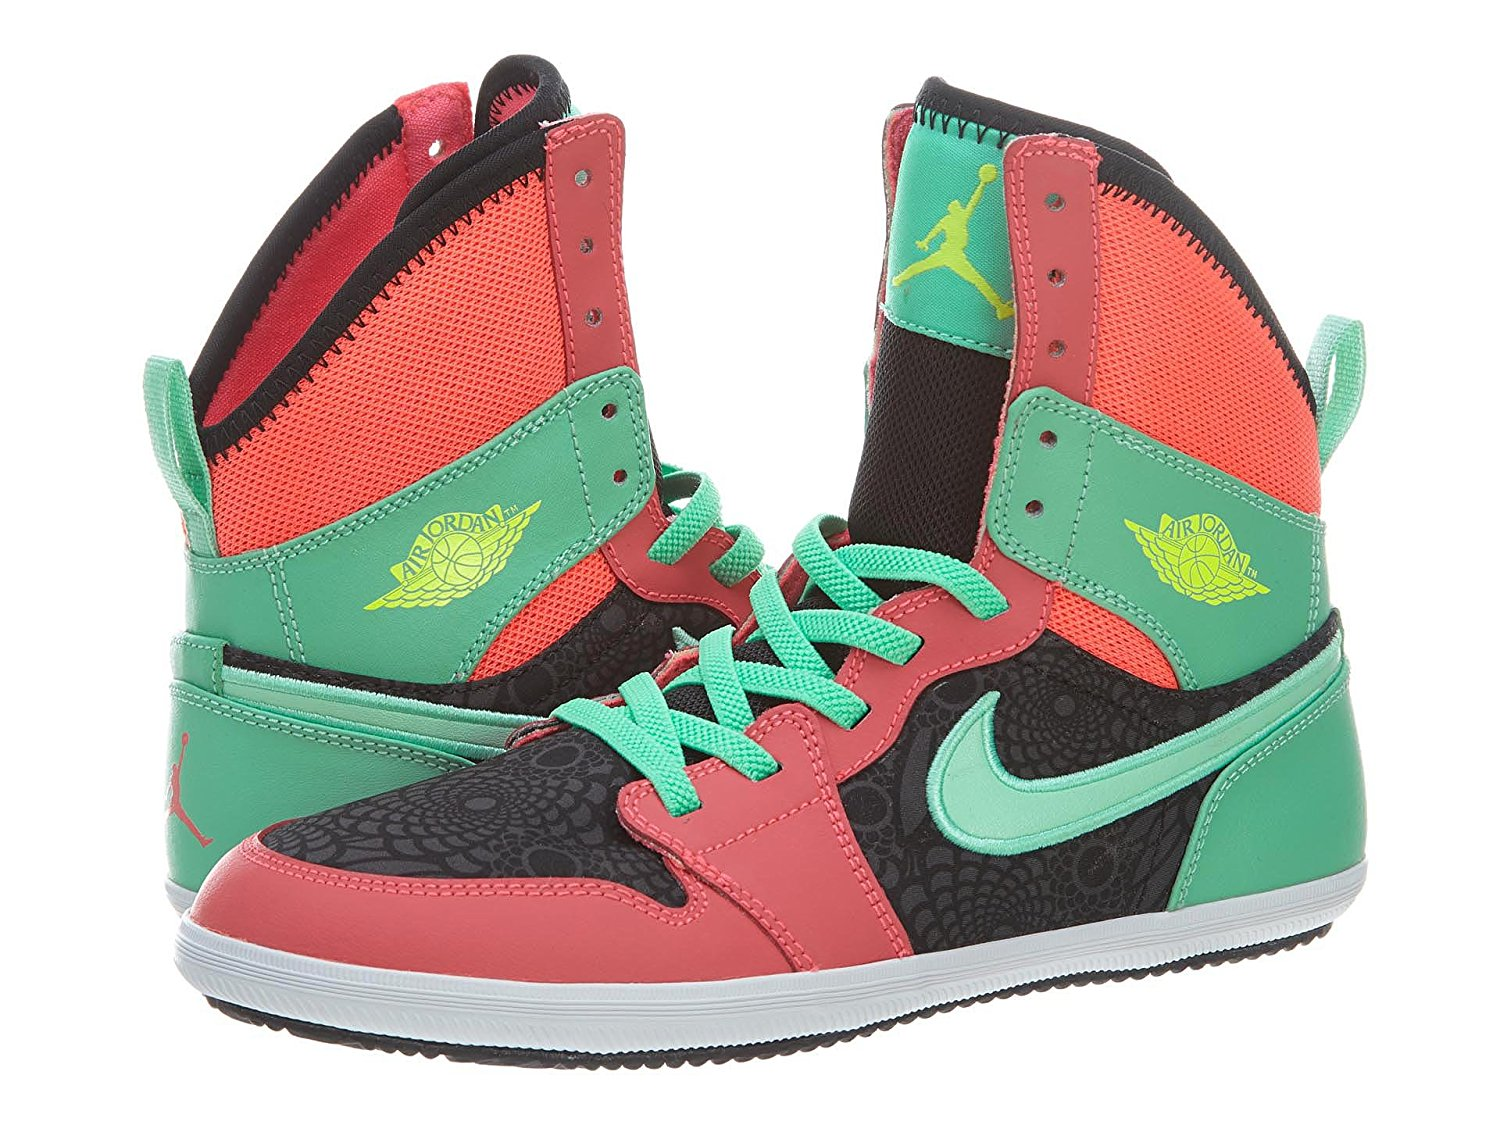 nike air jordan 1 skinny high (GS) hi top trainers sneakers 602656 633 shoes fa084e1566d4